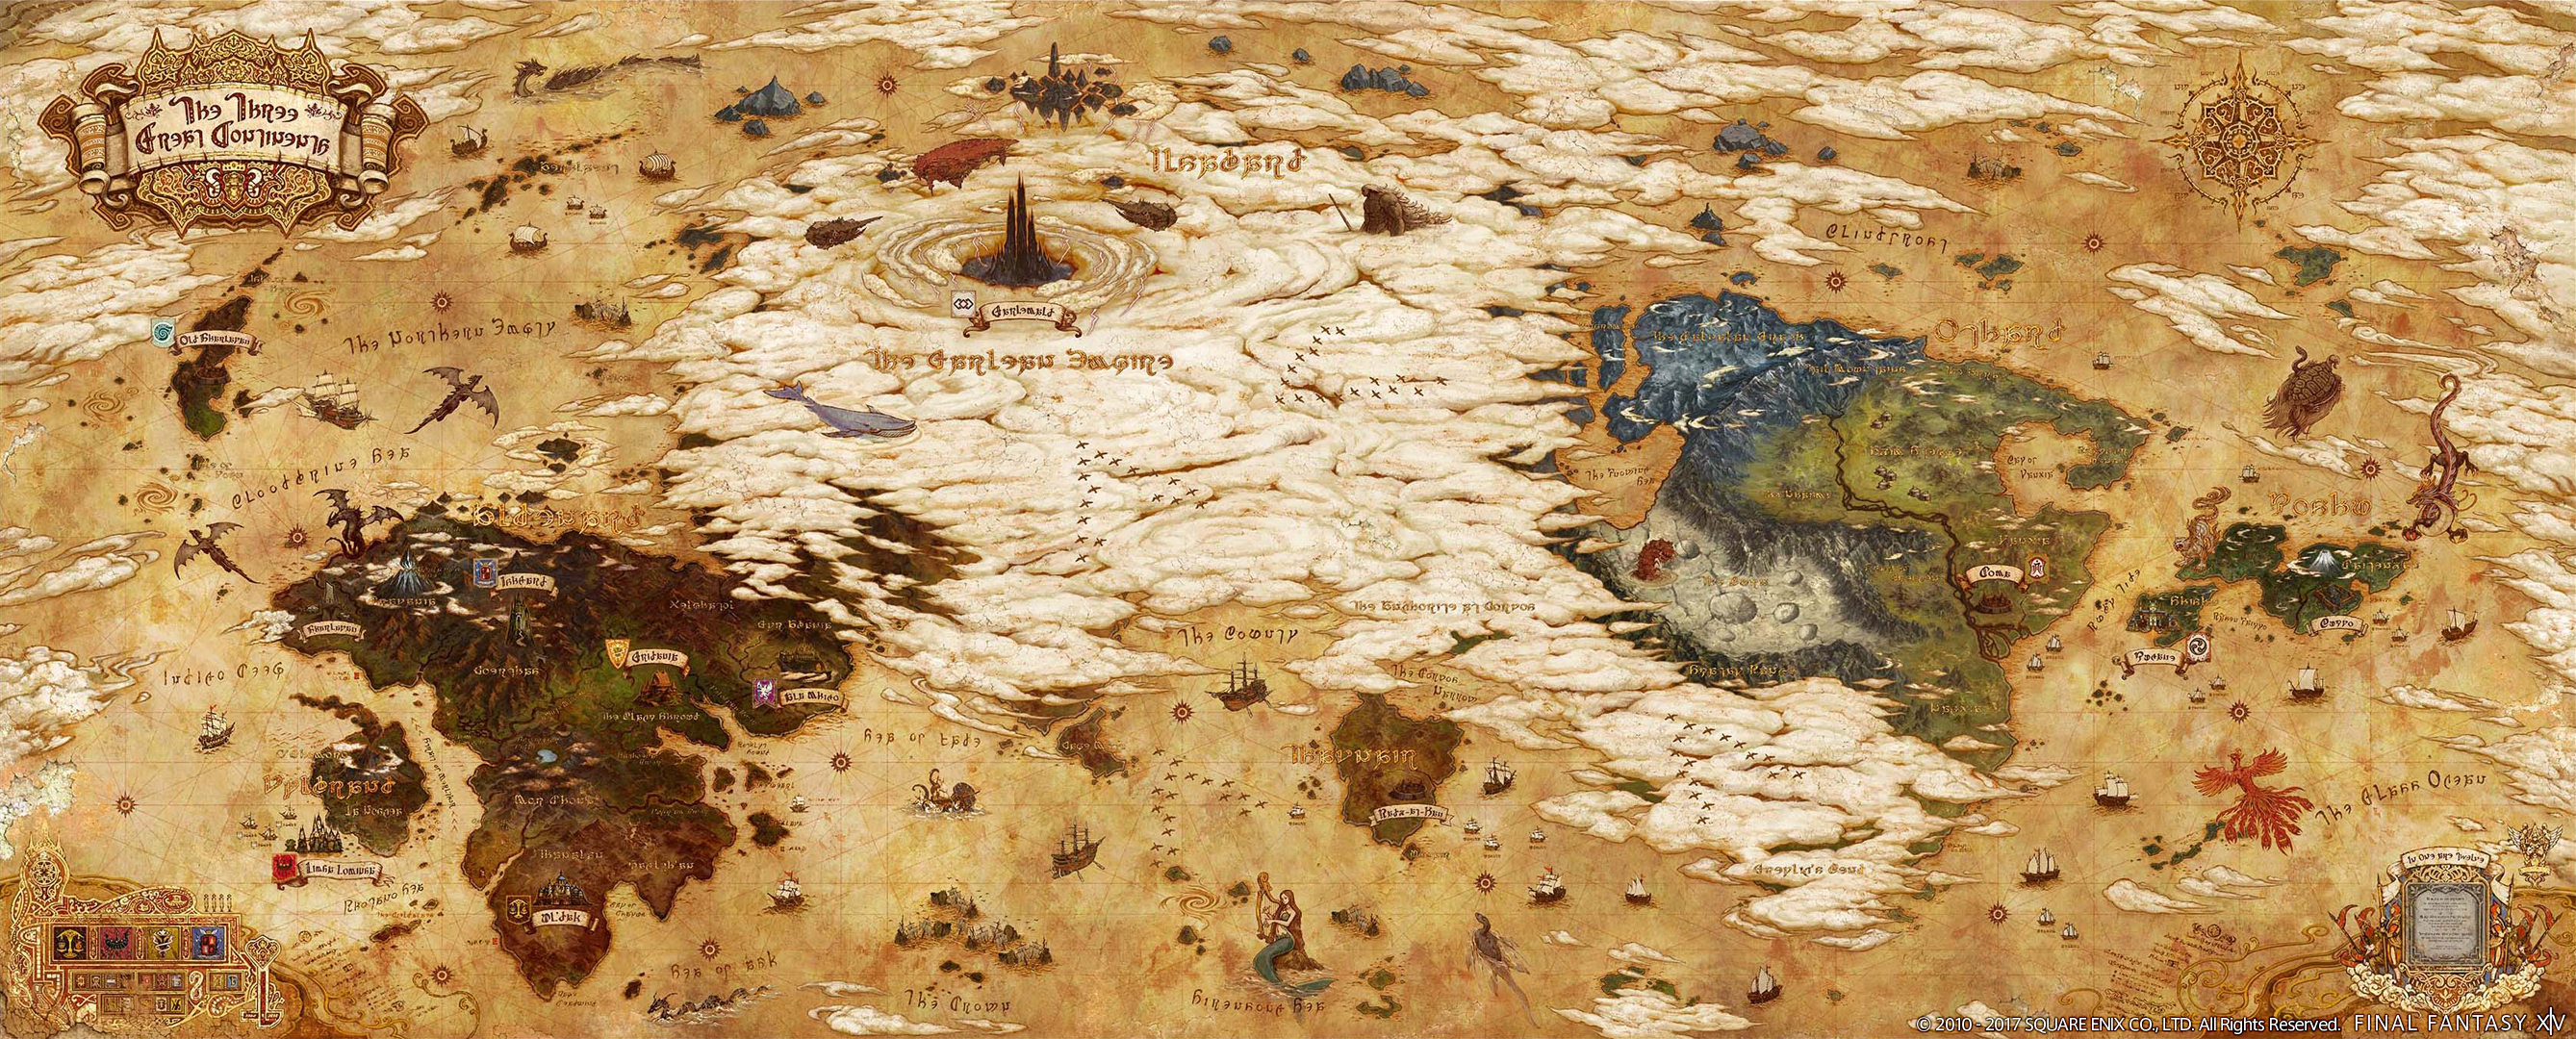 Hydaelyn final fantasy wiki fandom powered by wikia view from space map gumiabroncs Image collections